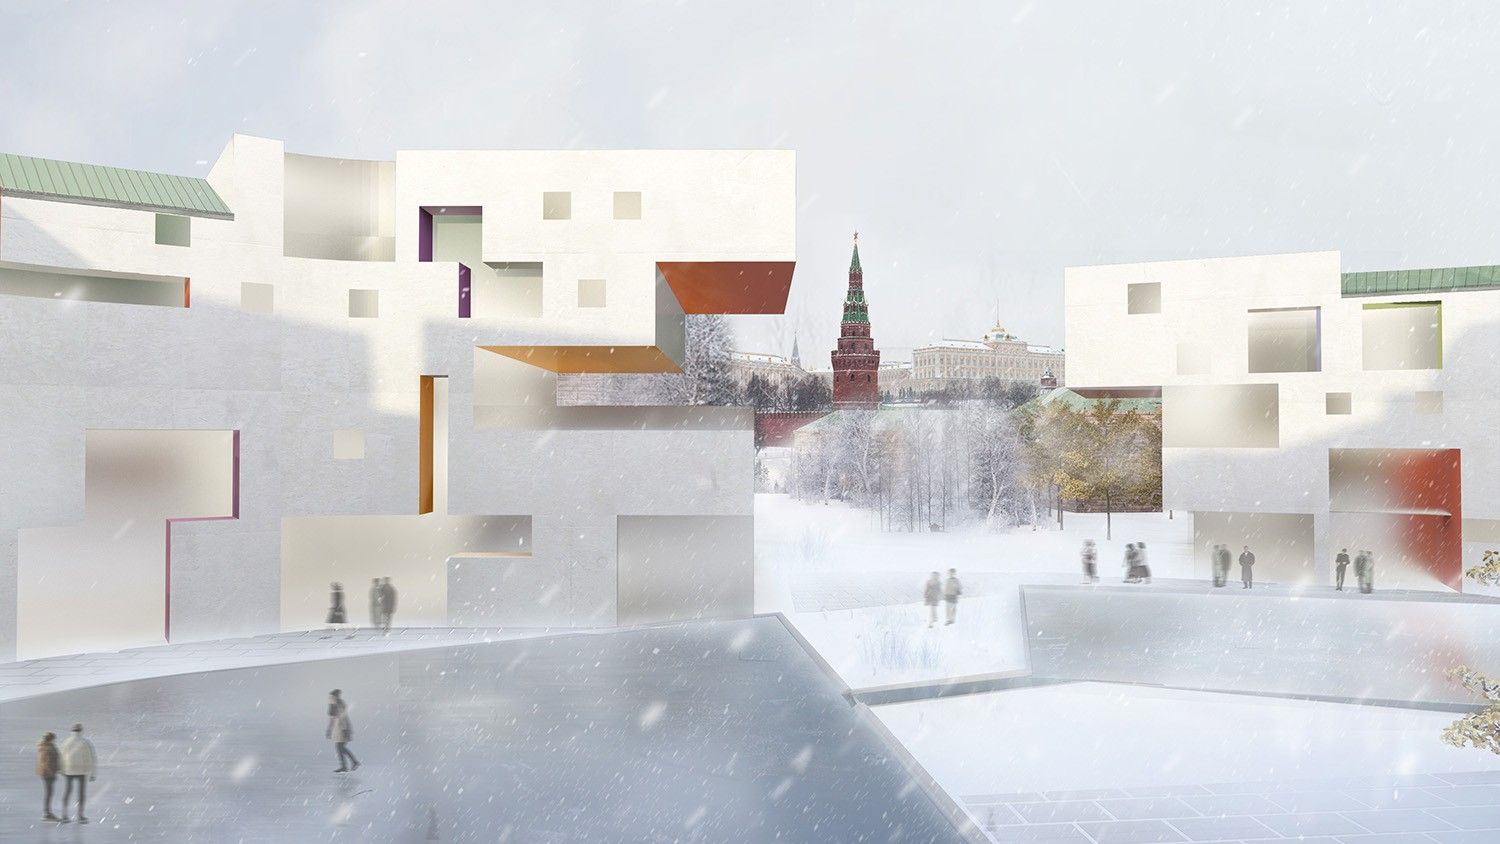 https://stevenholl.sfo2.digitaloceanspaces.com/uploads/projects/project-images/StevenHollArchitects_MGI_SHA-Moscow-main plaza_2_WH.jpg